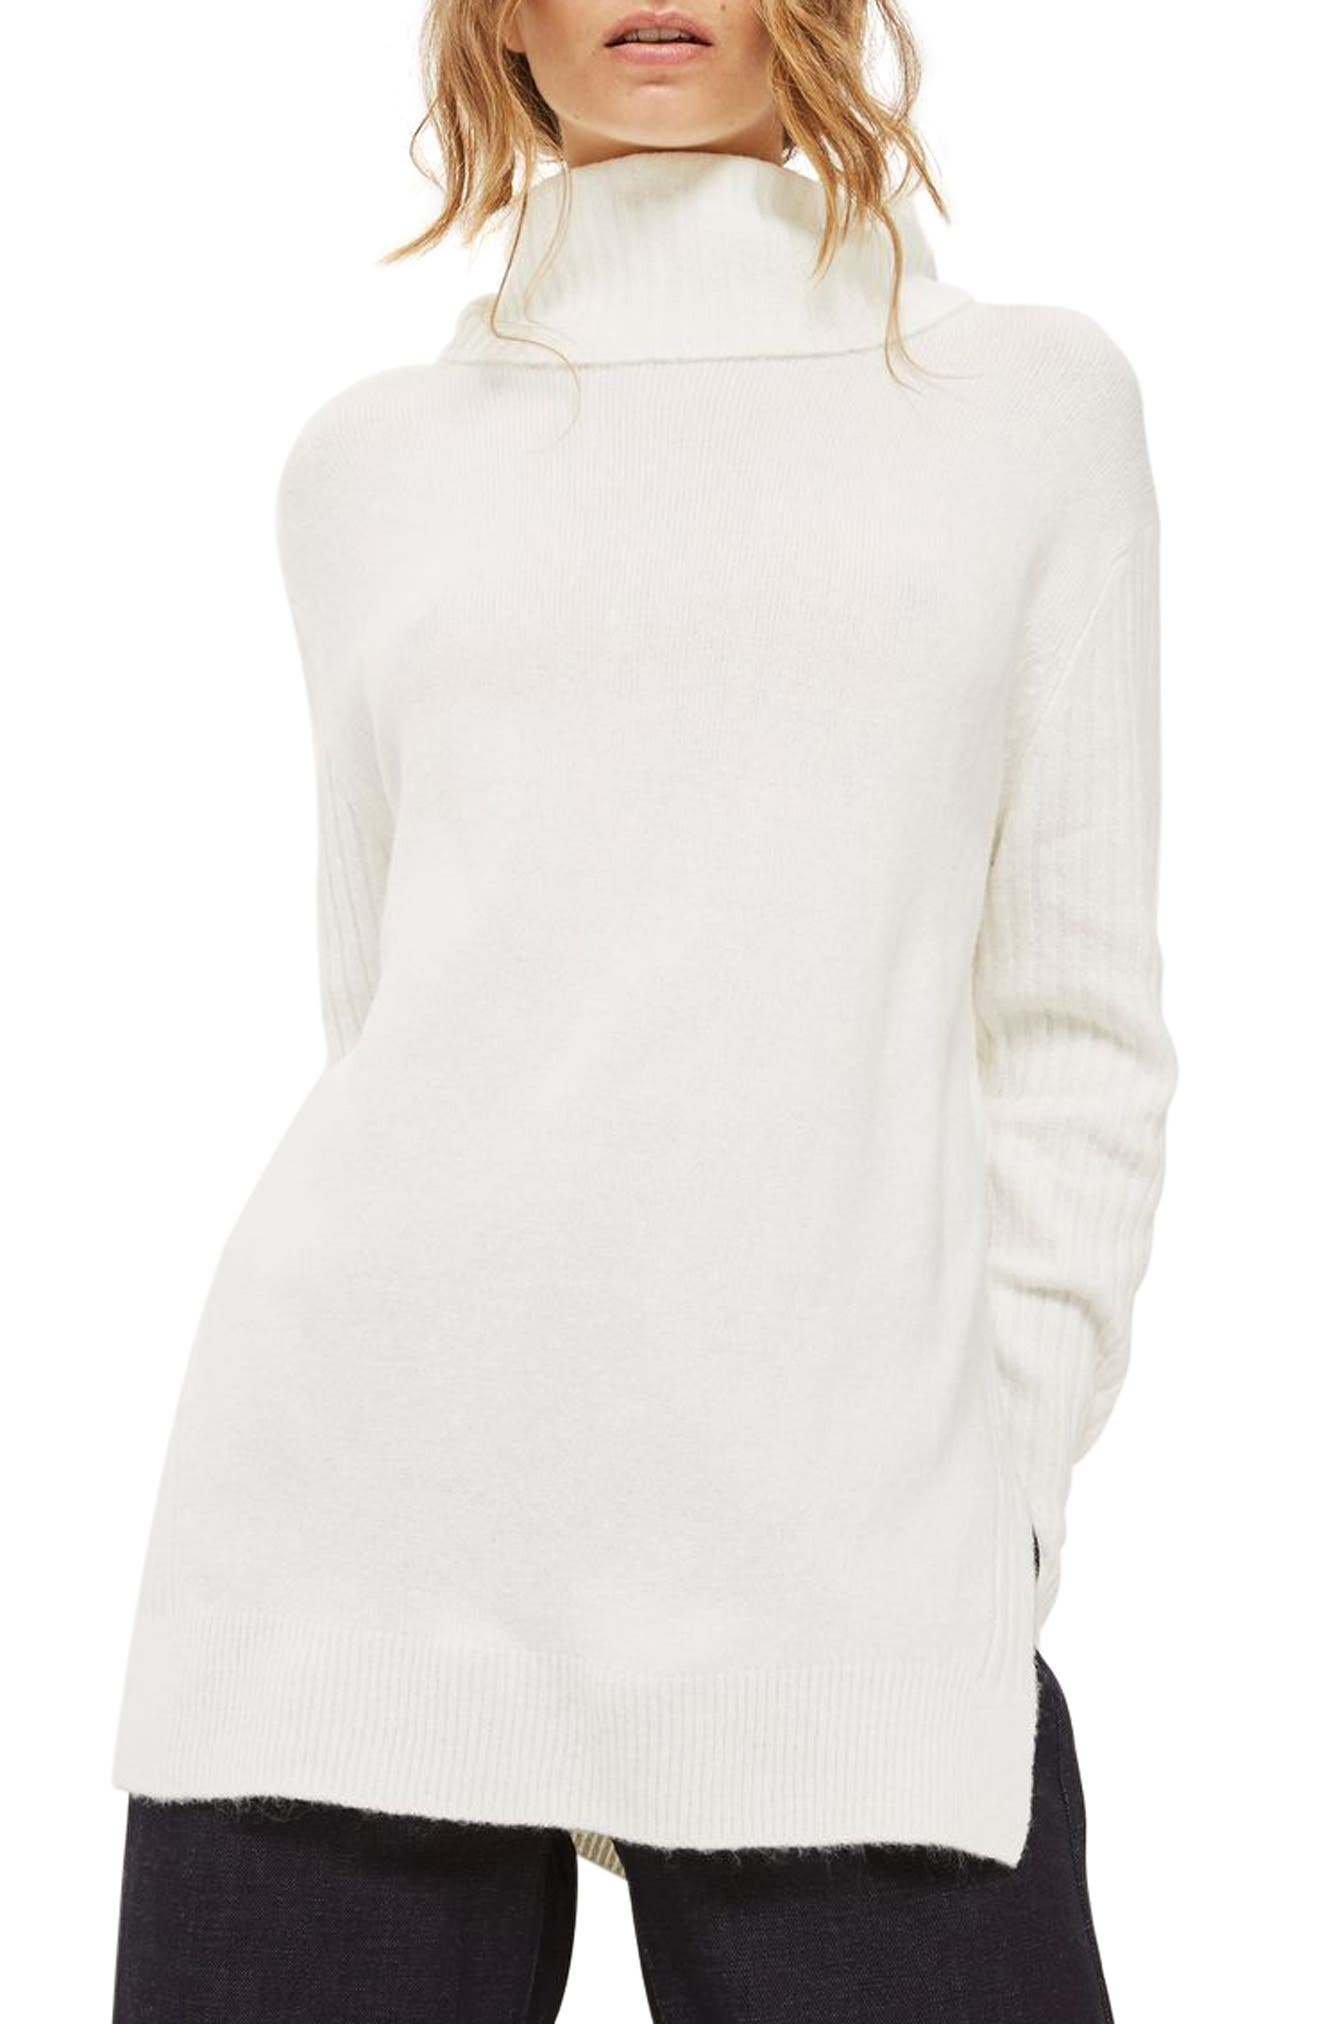 Topshop Oversize Turtleneck Sweater